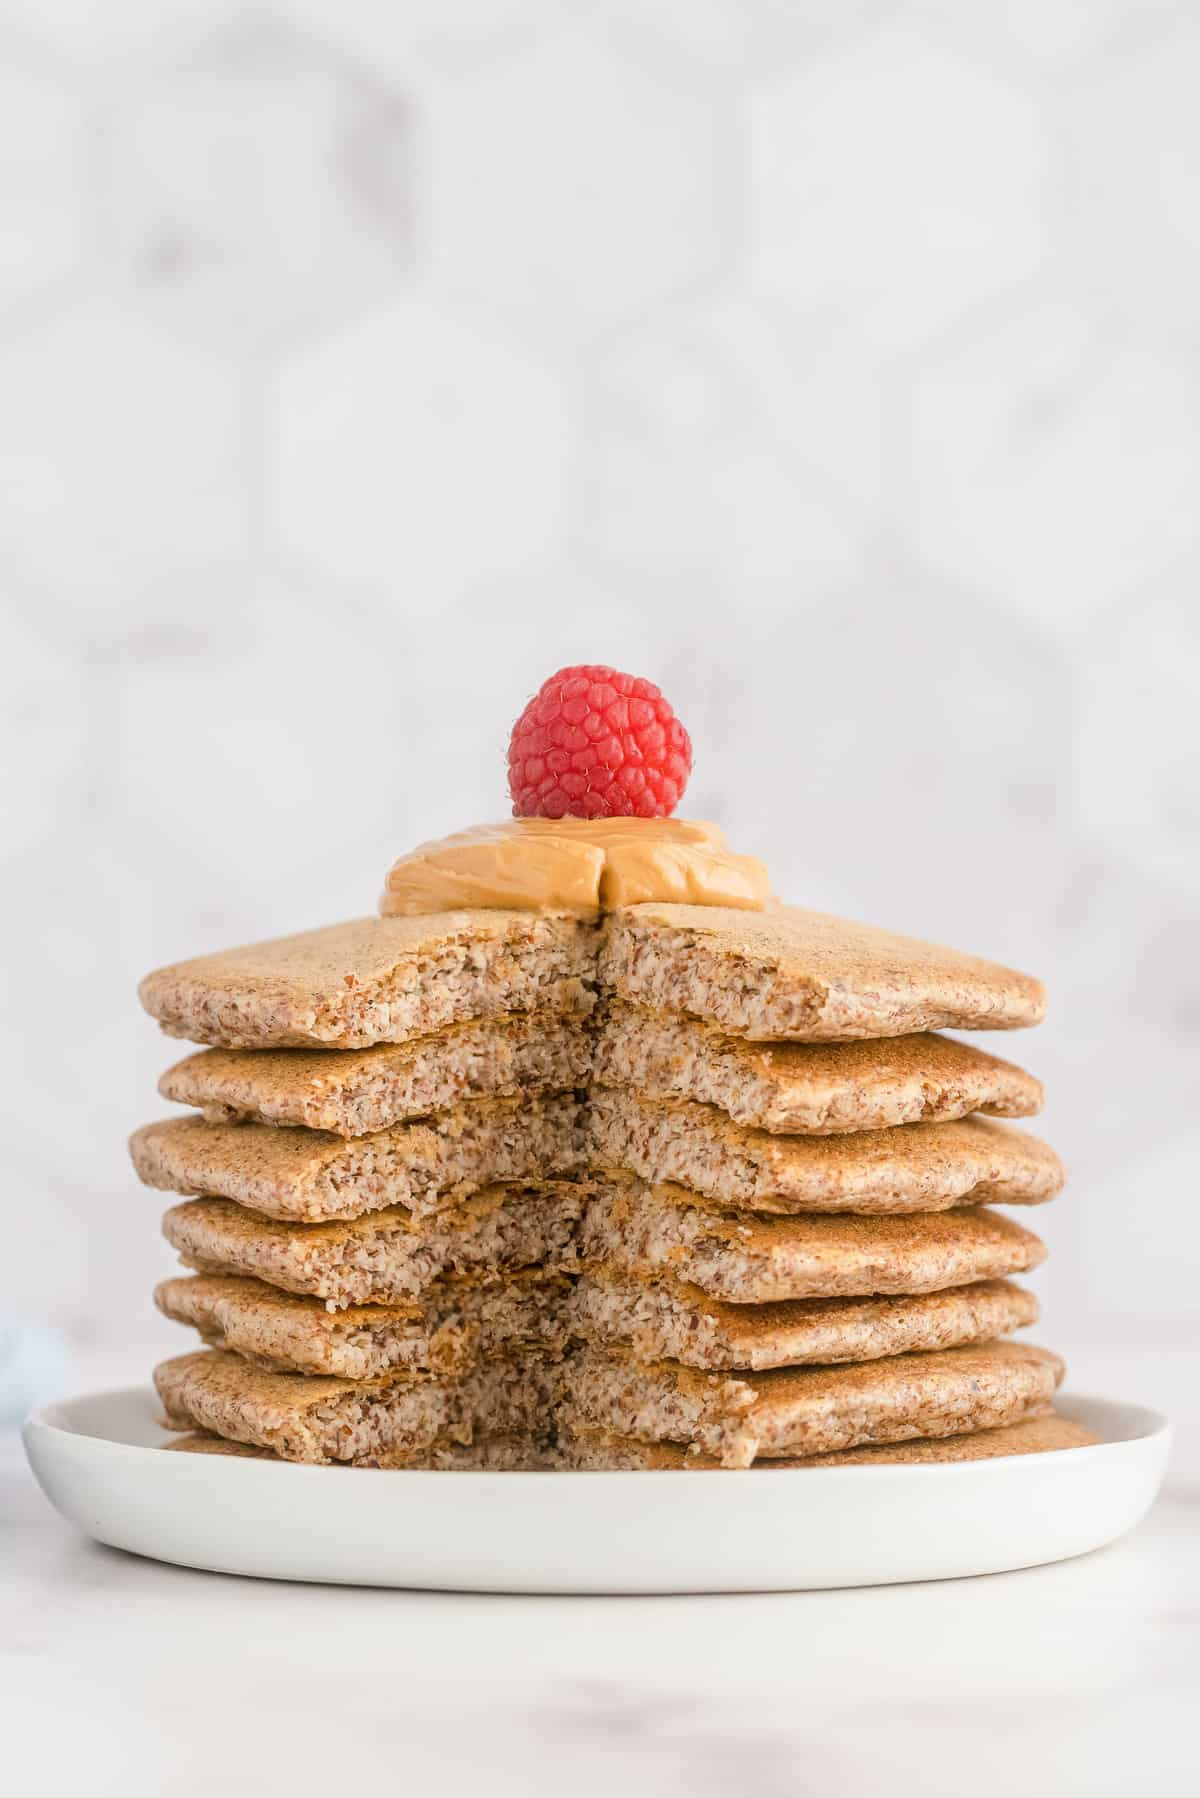 Pancakes stacked up with a cut out of them, on a white plate.